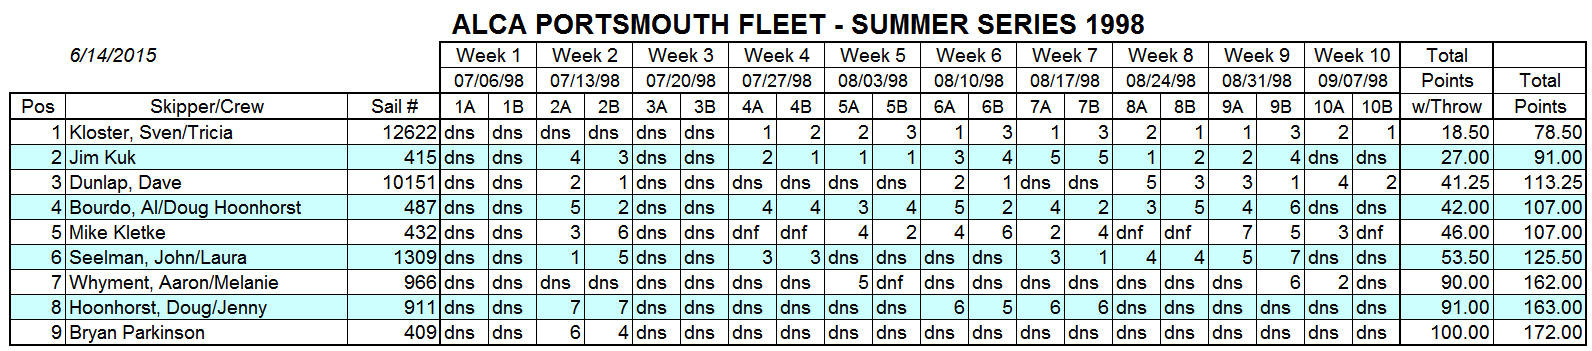 1998 Summer Portsmouth Fleet Results